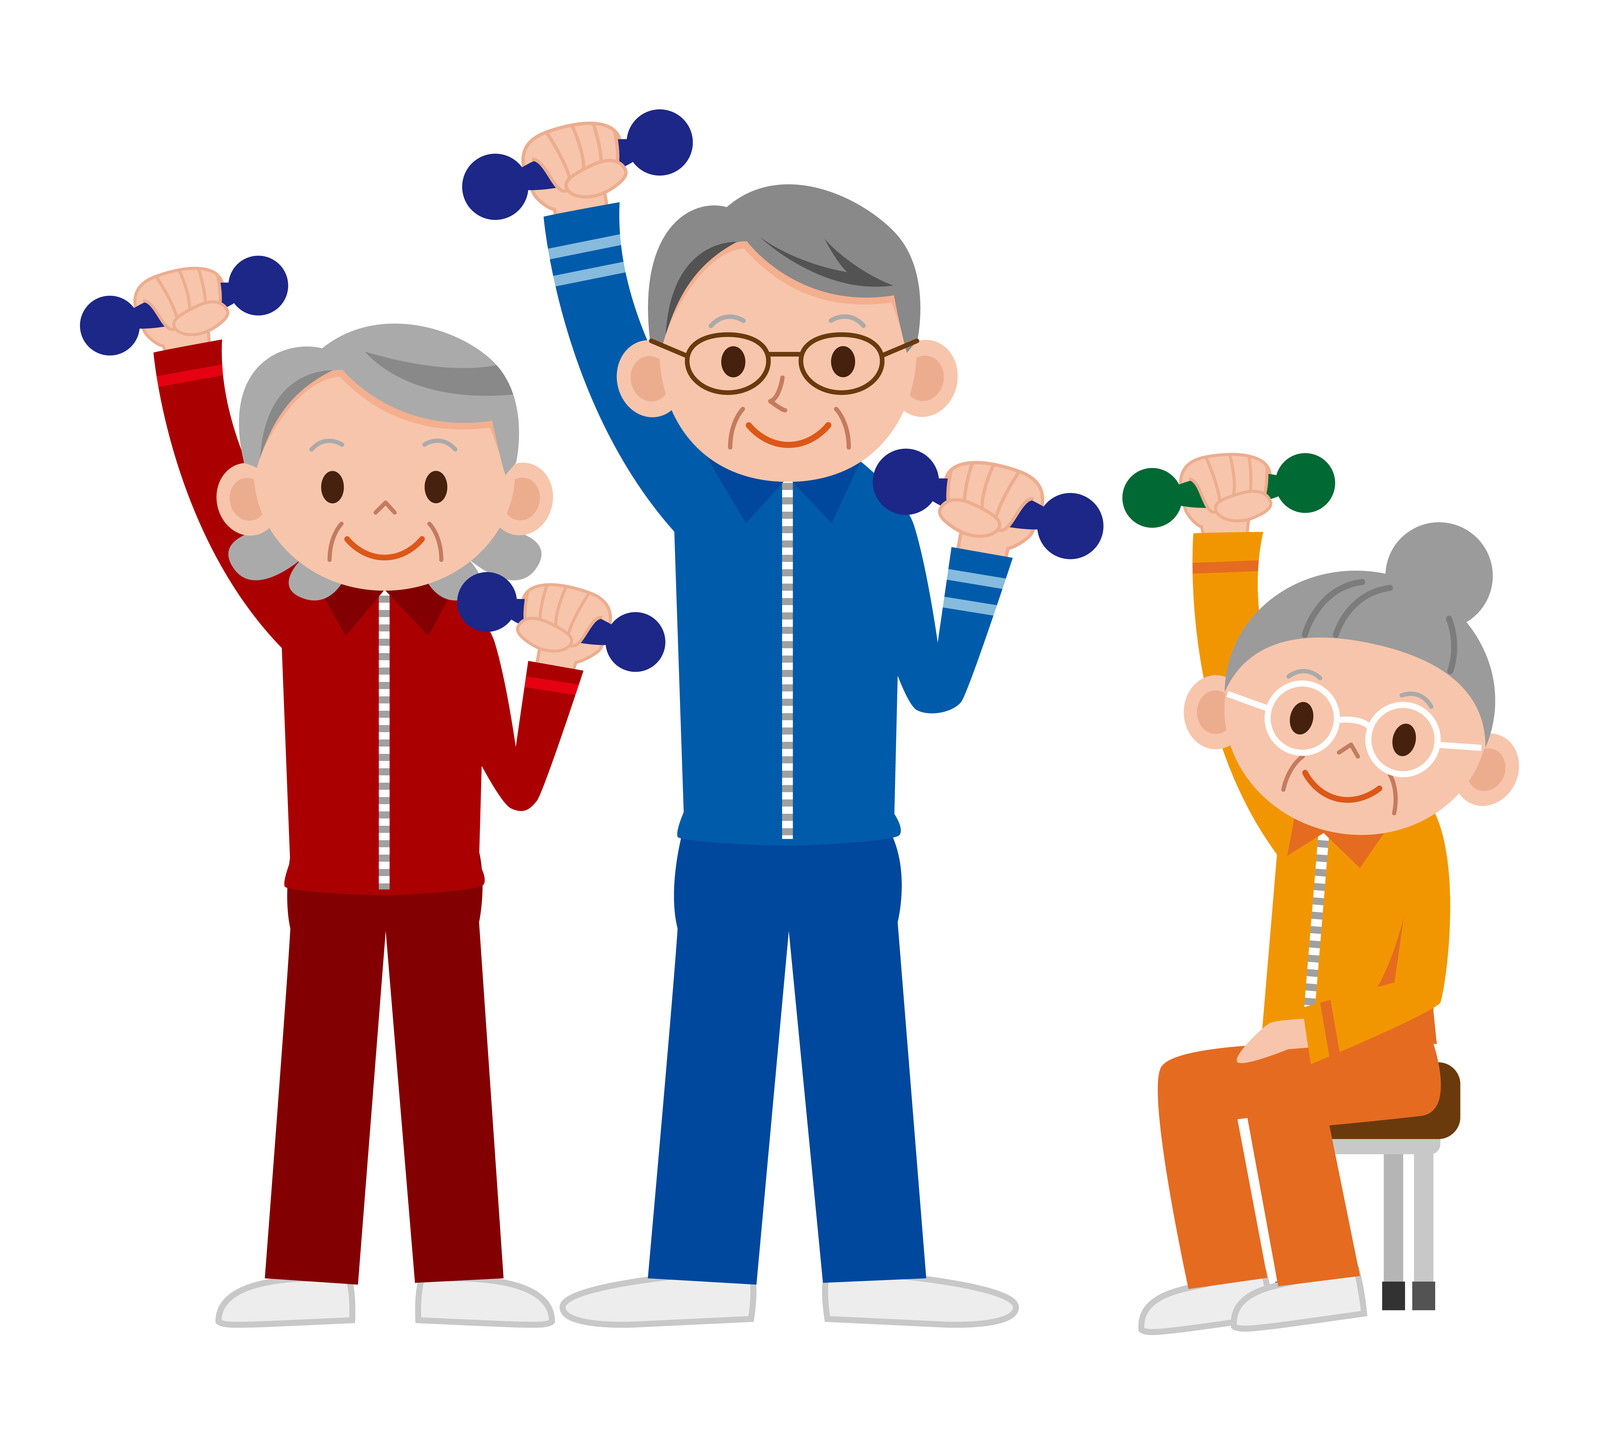 Free Health Elderly Cliparts, Download Free Clip Art, Free Clip Art.